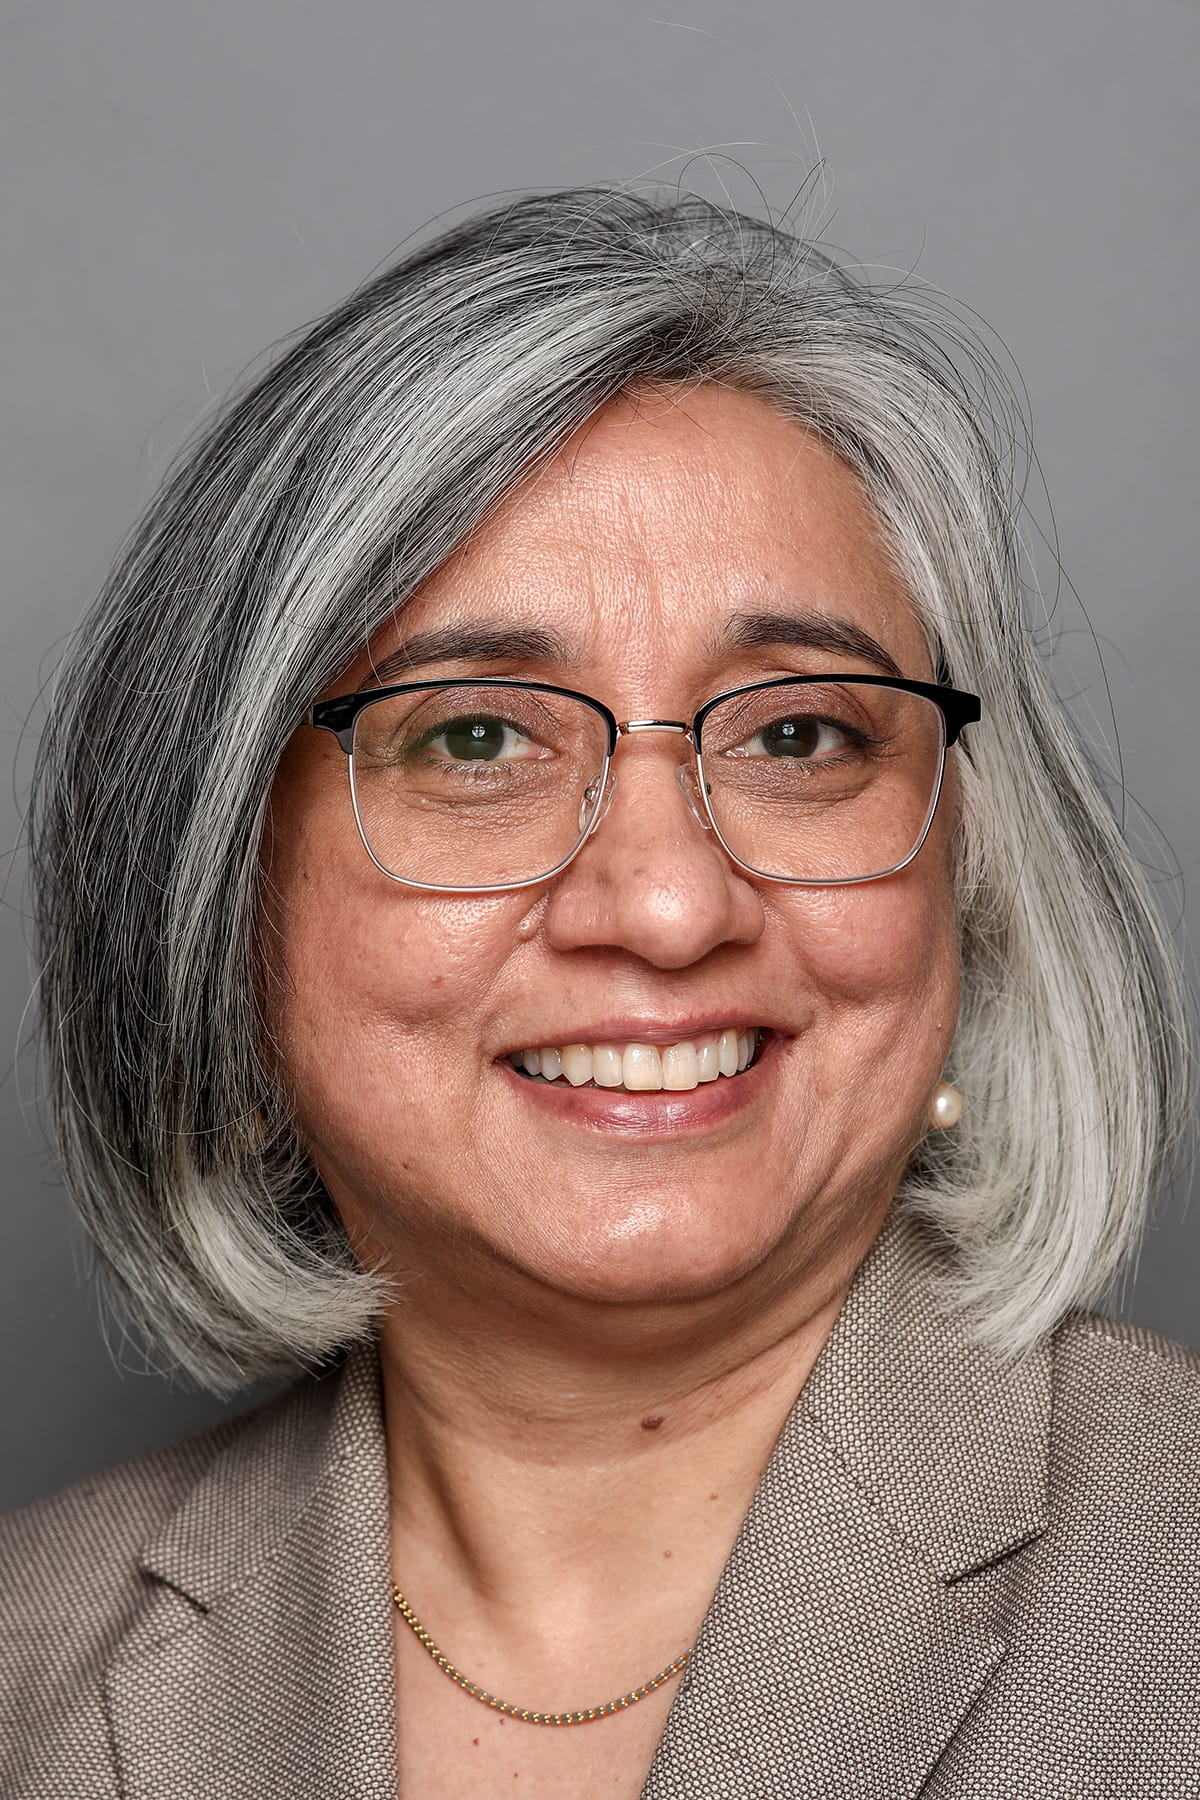 A photo of Susmita Kashikar-Zuck.